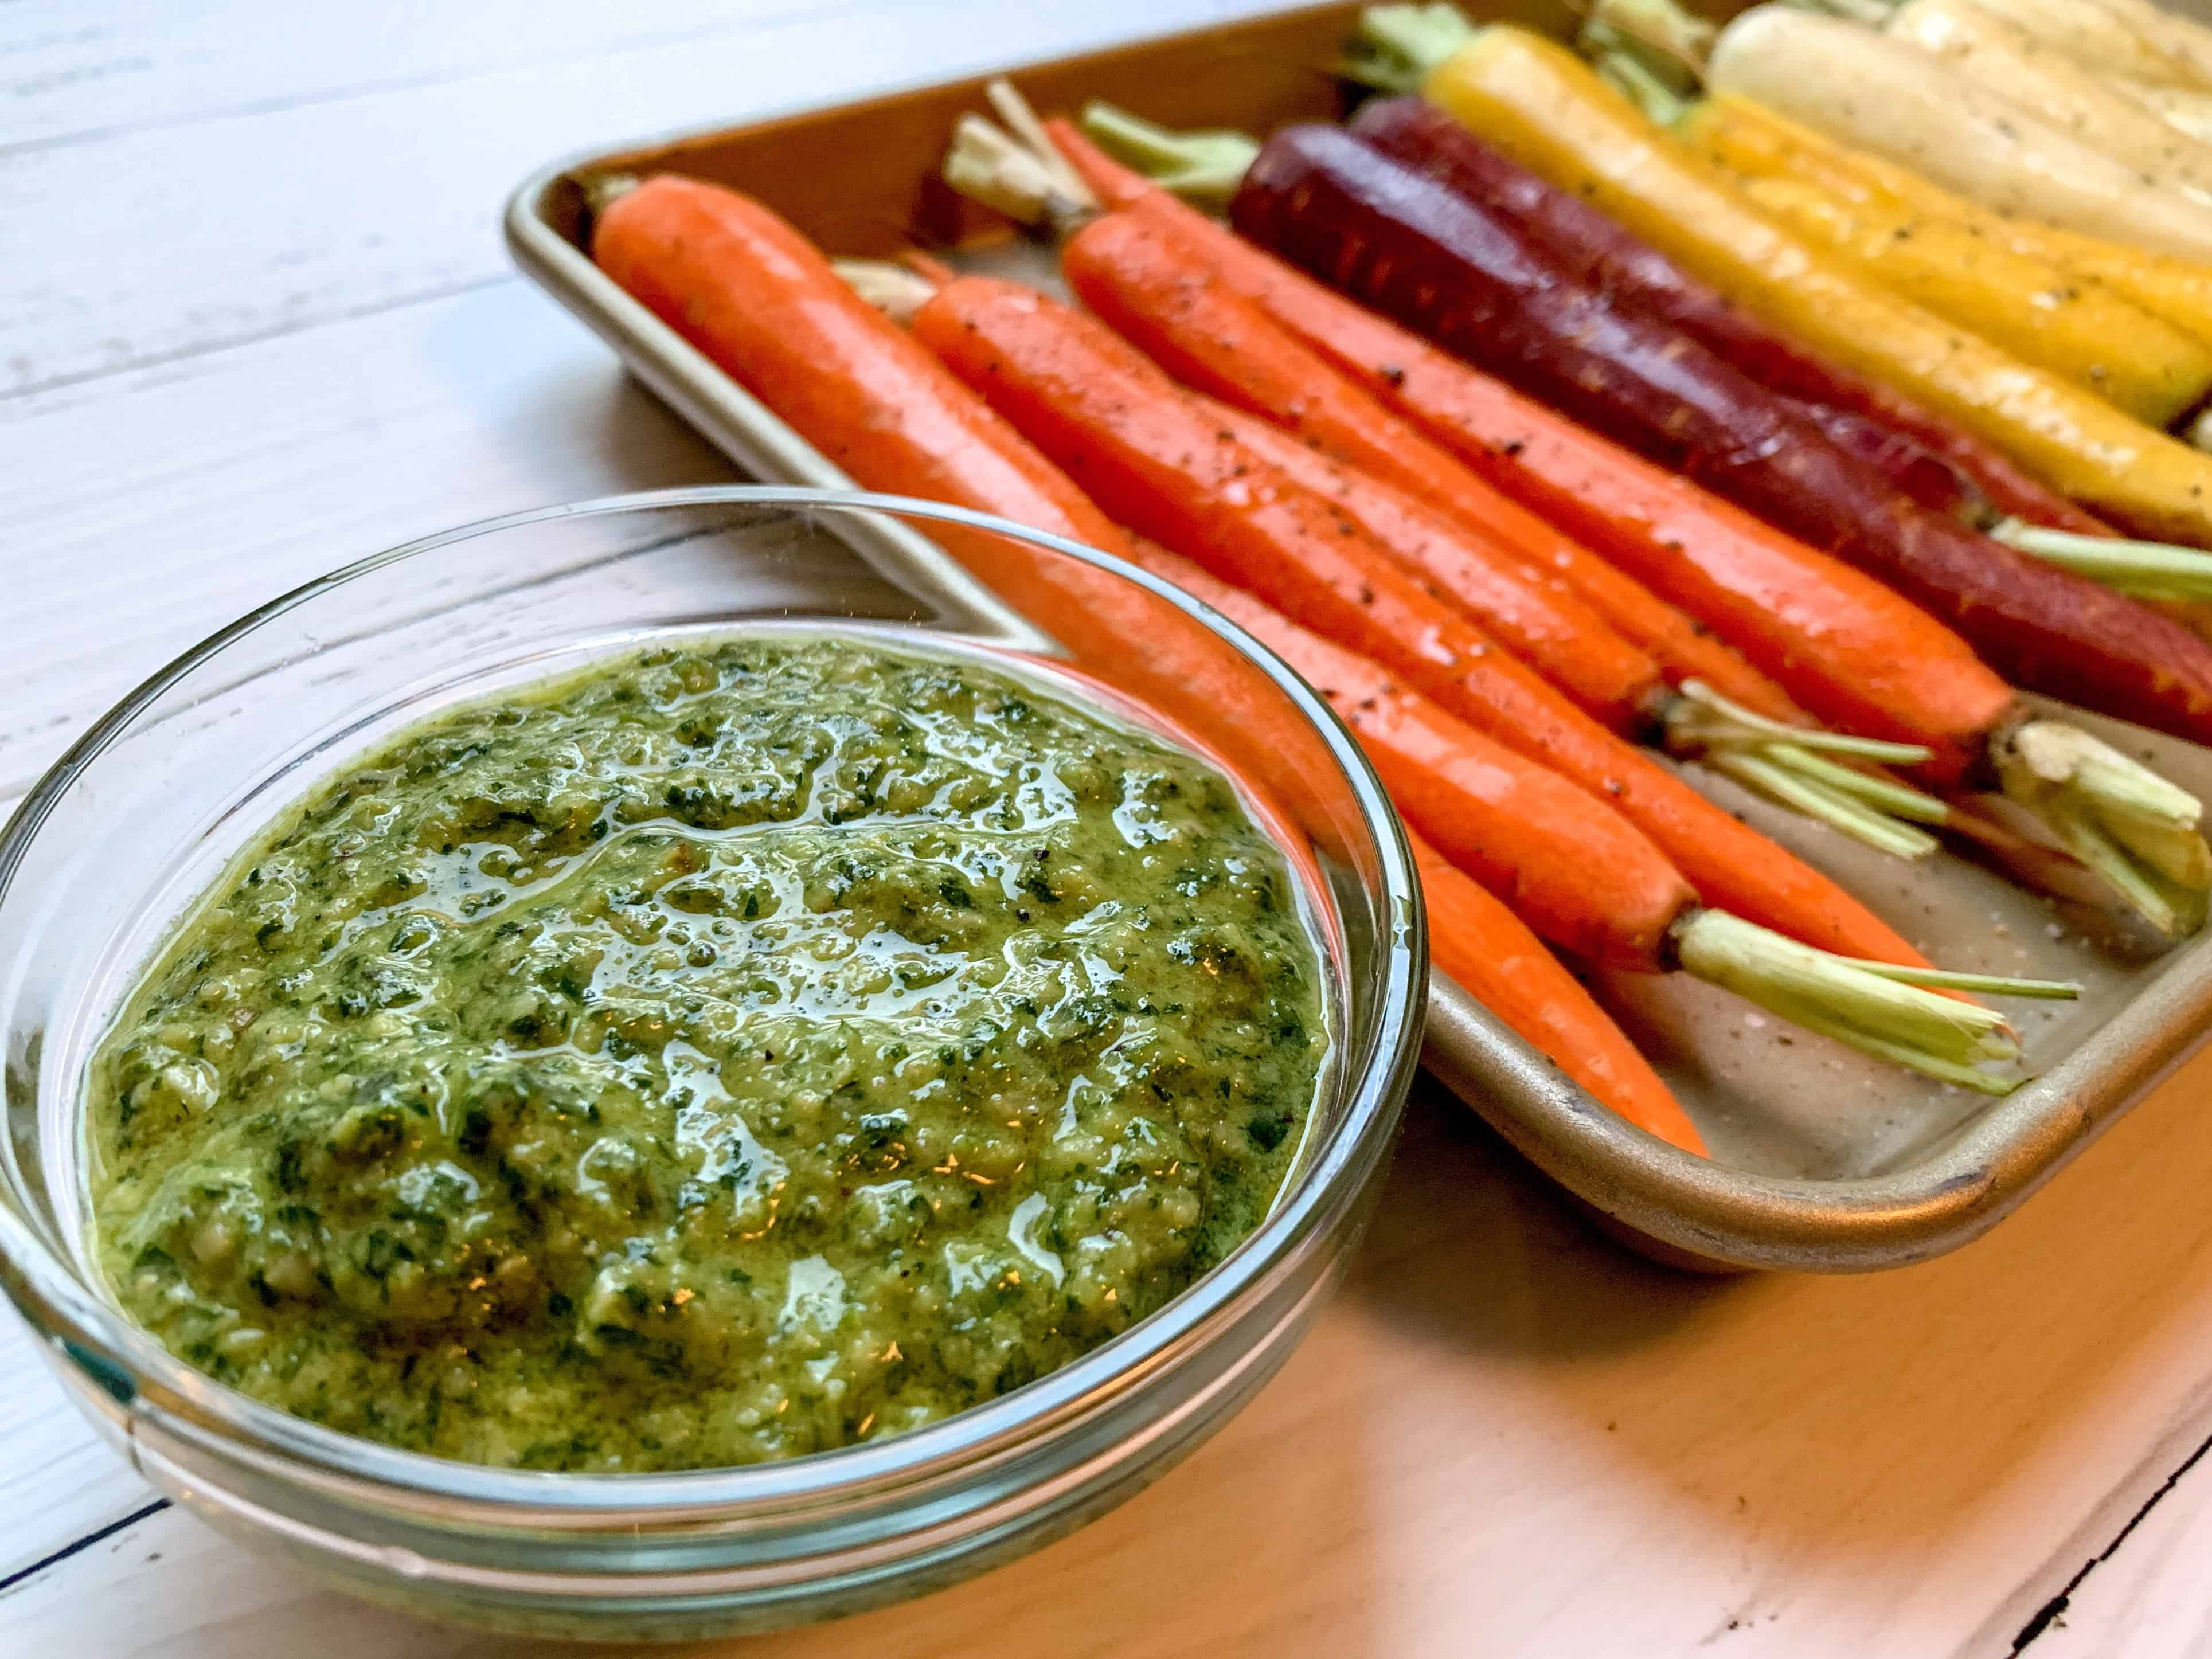 rainbow carrots on baking sheet with bowl of pesto next to sheet.